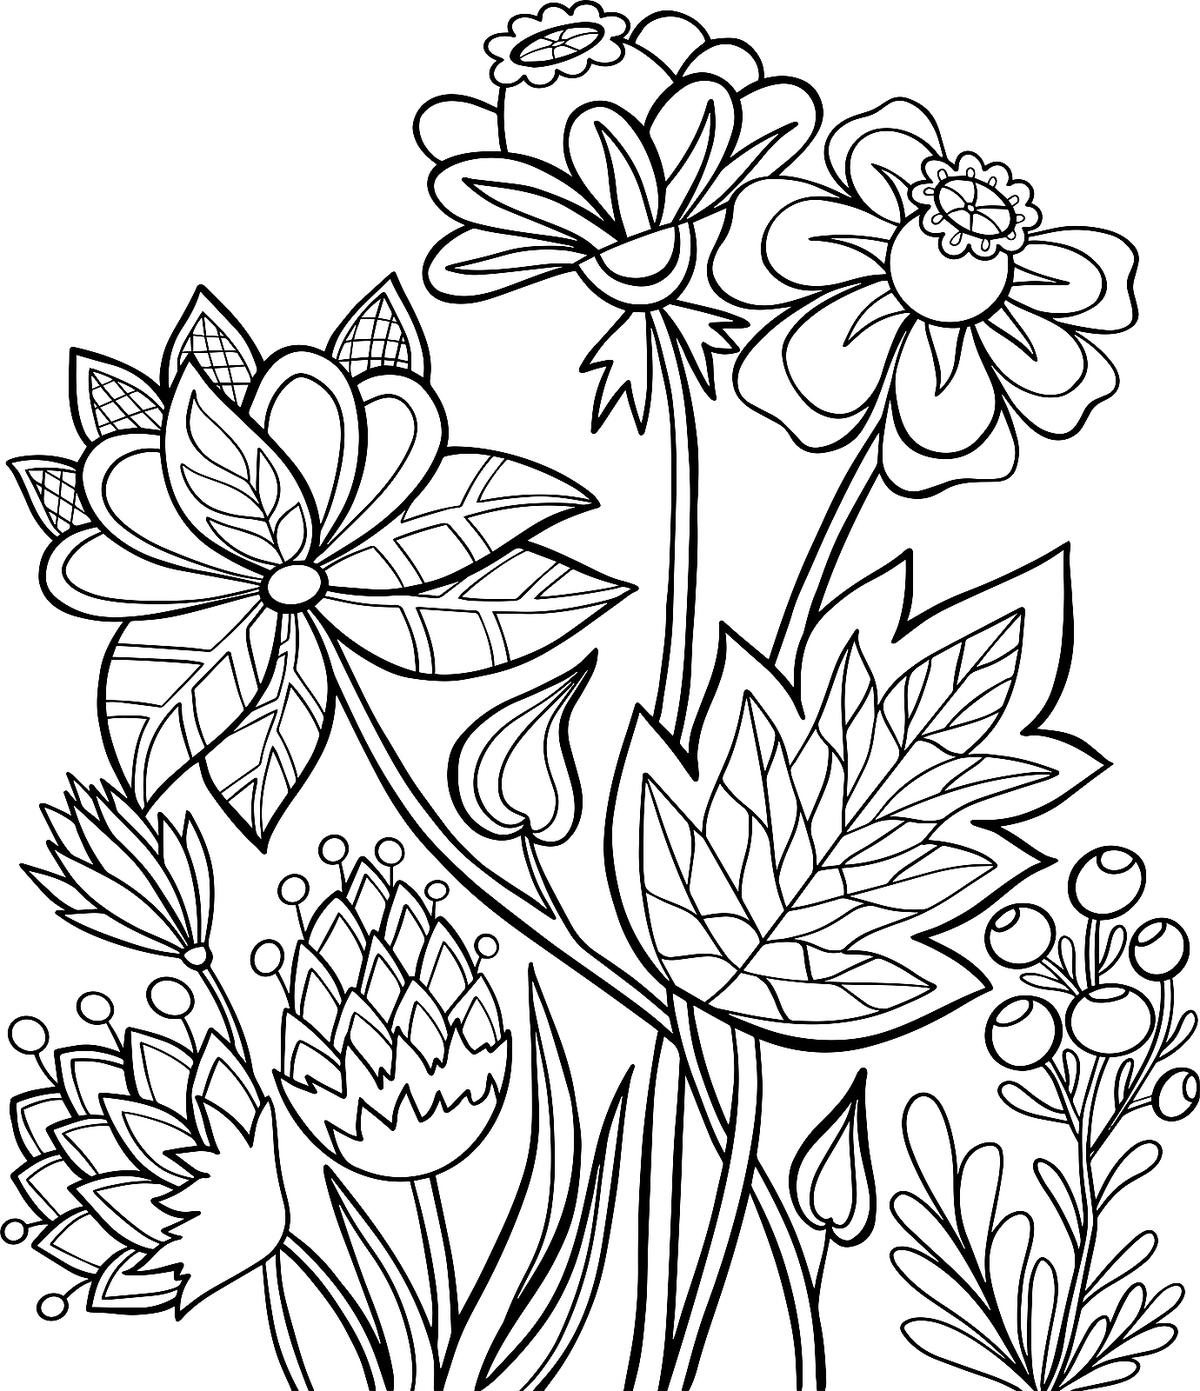 flower coloring pages to print coloring pages of flowers for teenagers difficult free to coloring flower pages print